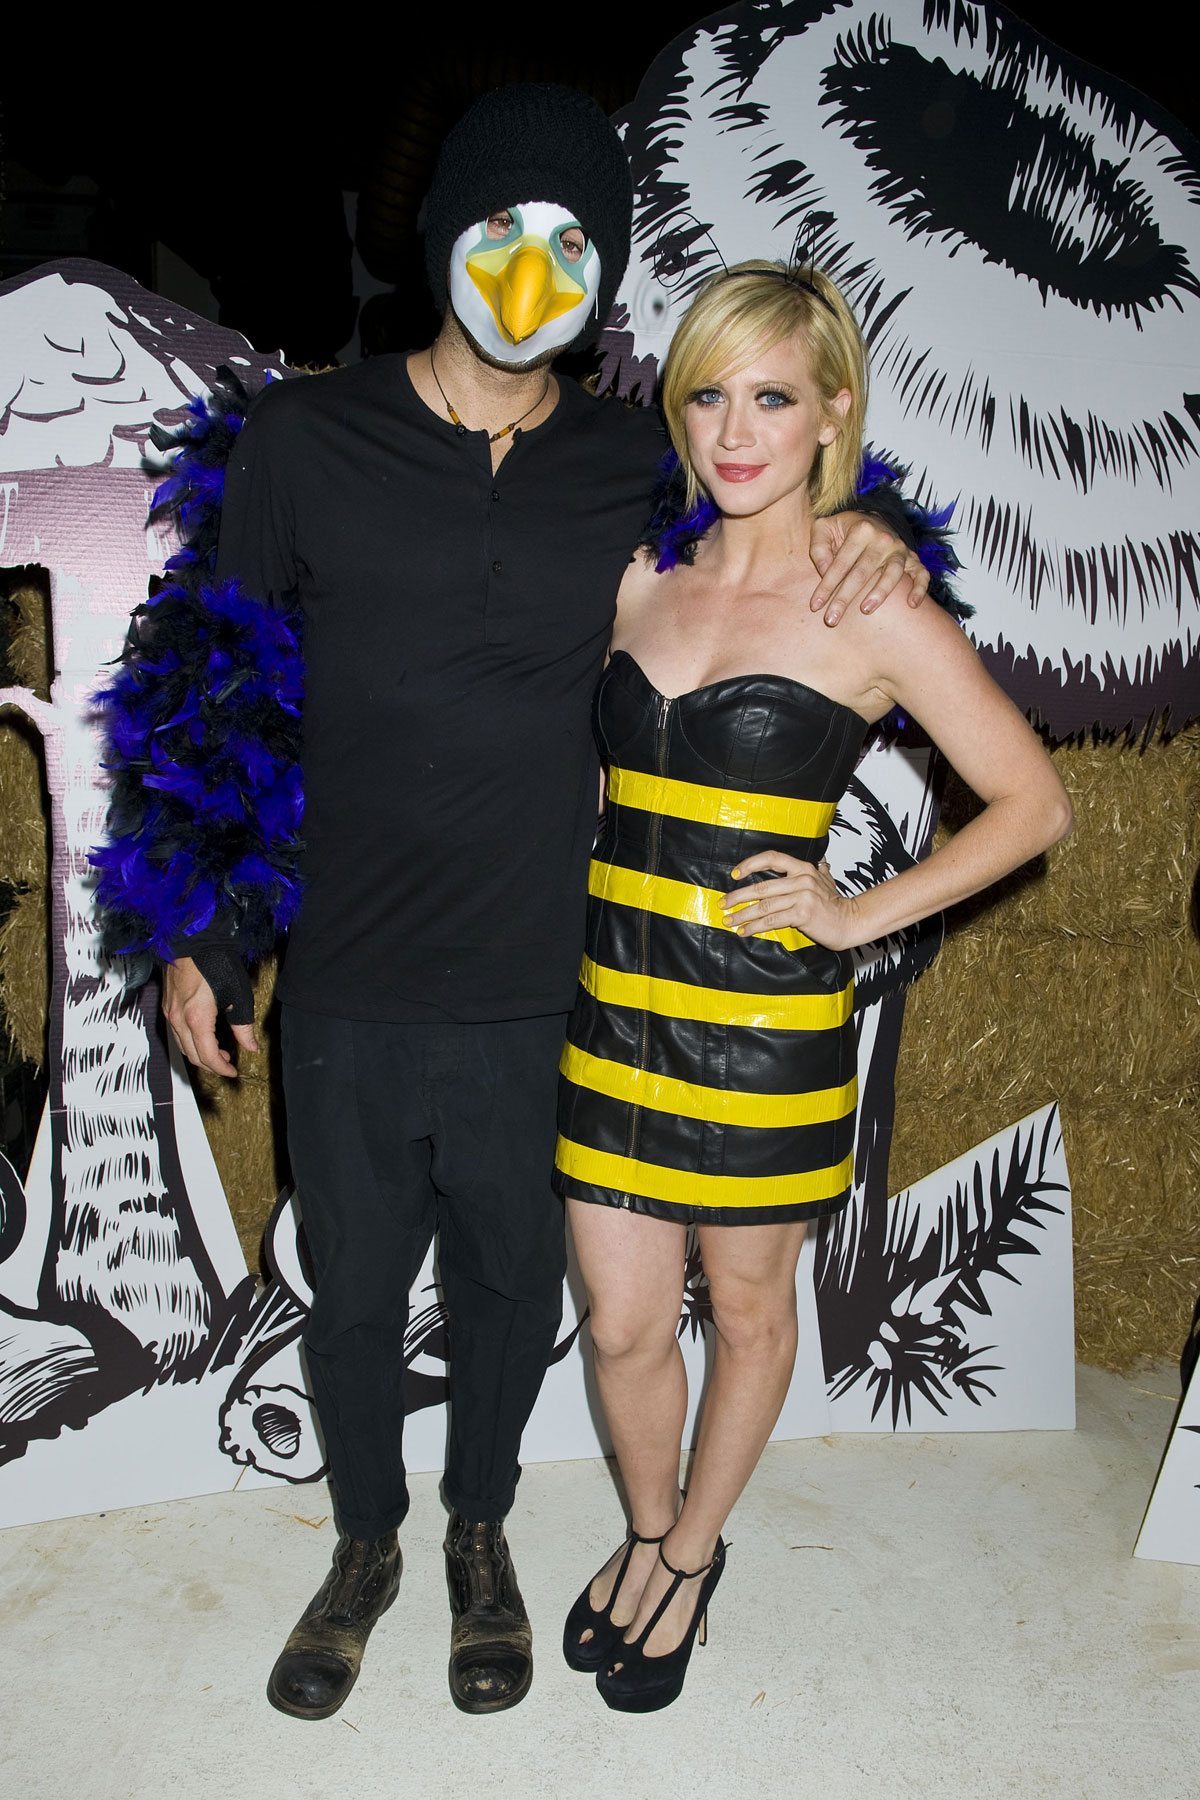 BRITTANY SNOW at Just Jared Halloween Party in Los Angeles ...